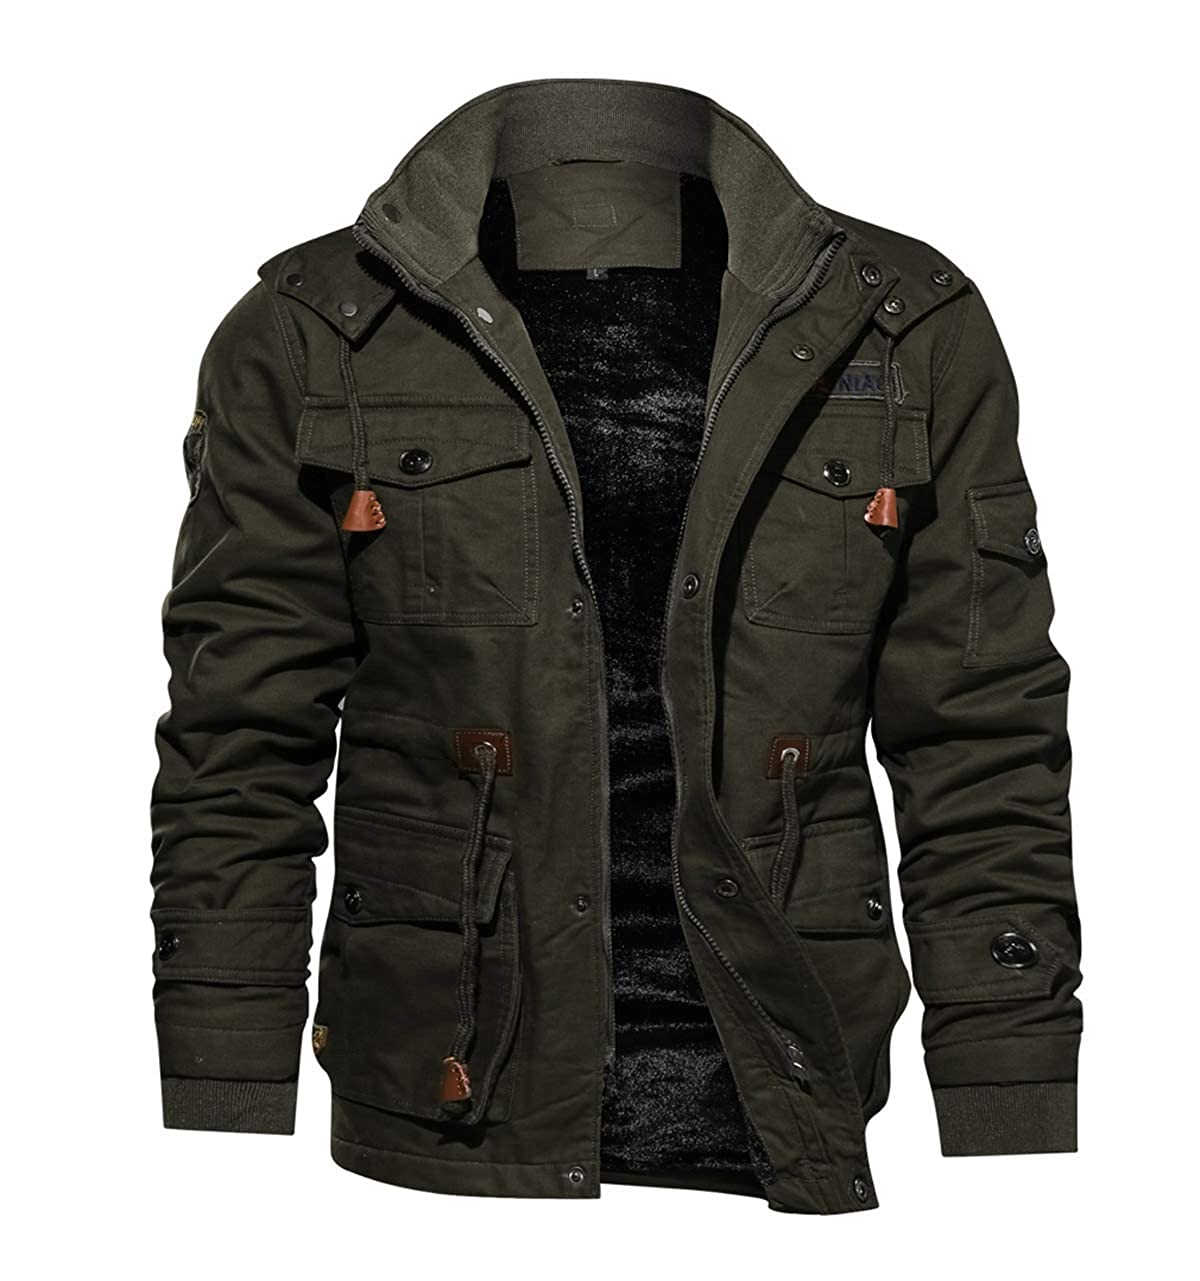 TACVASEN Mens Casual Winter Cotton Military Jacket Thicken Hooded Cargo Coat TCTJ-148